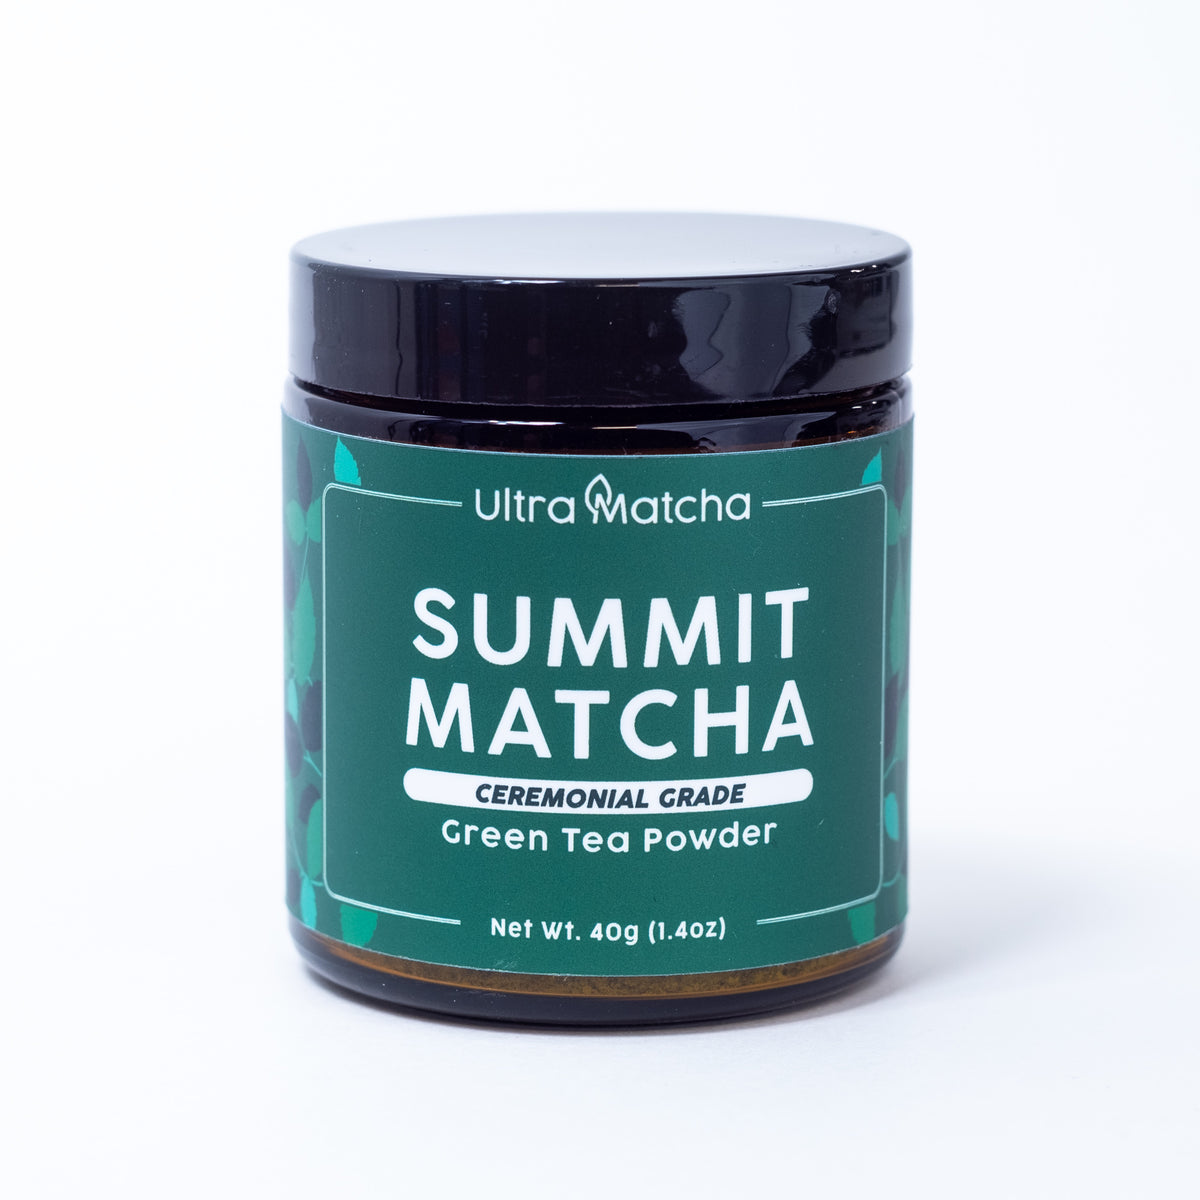 SUMMIT MATCHA